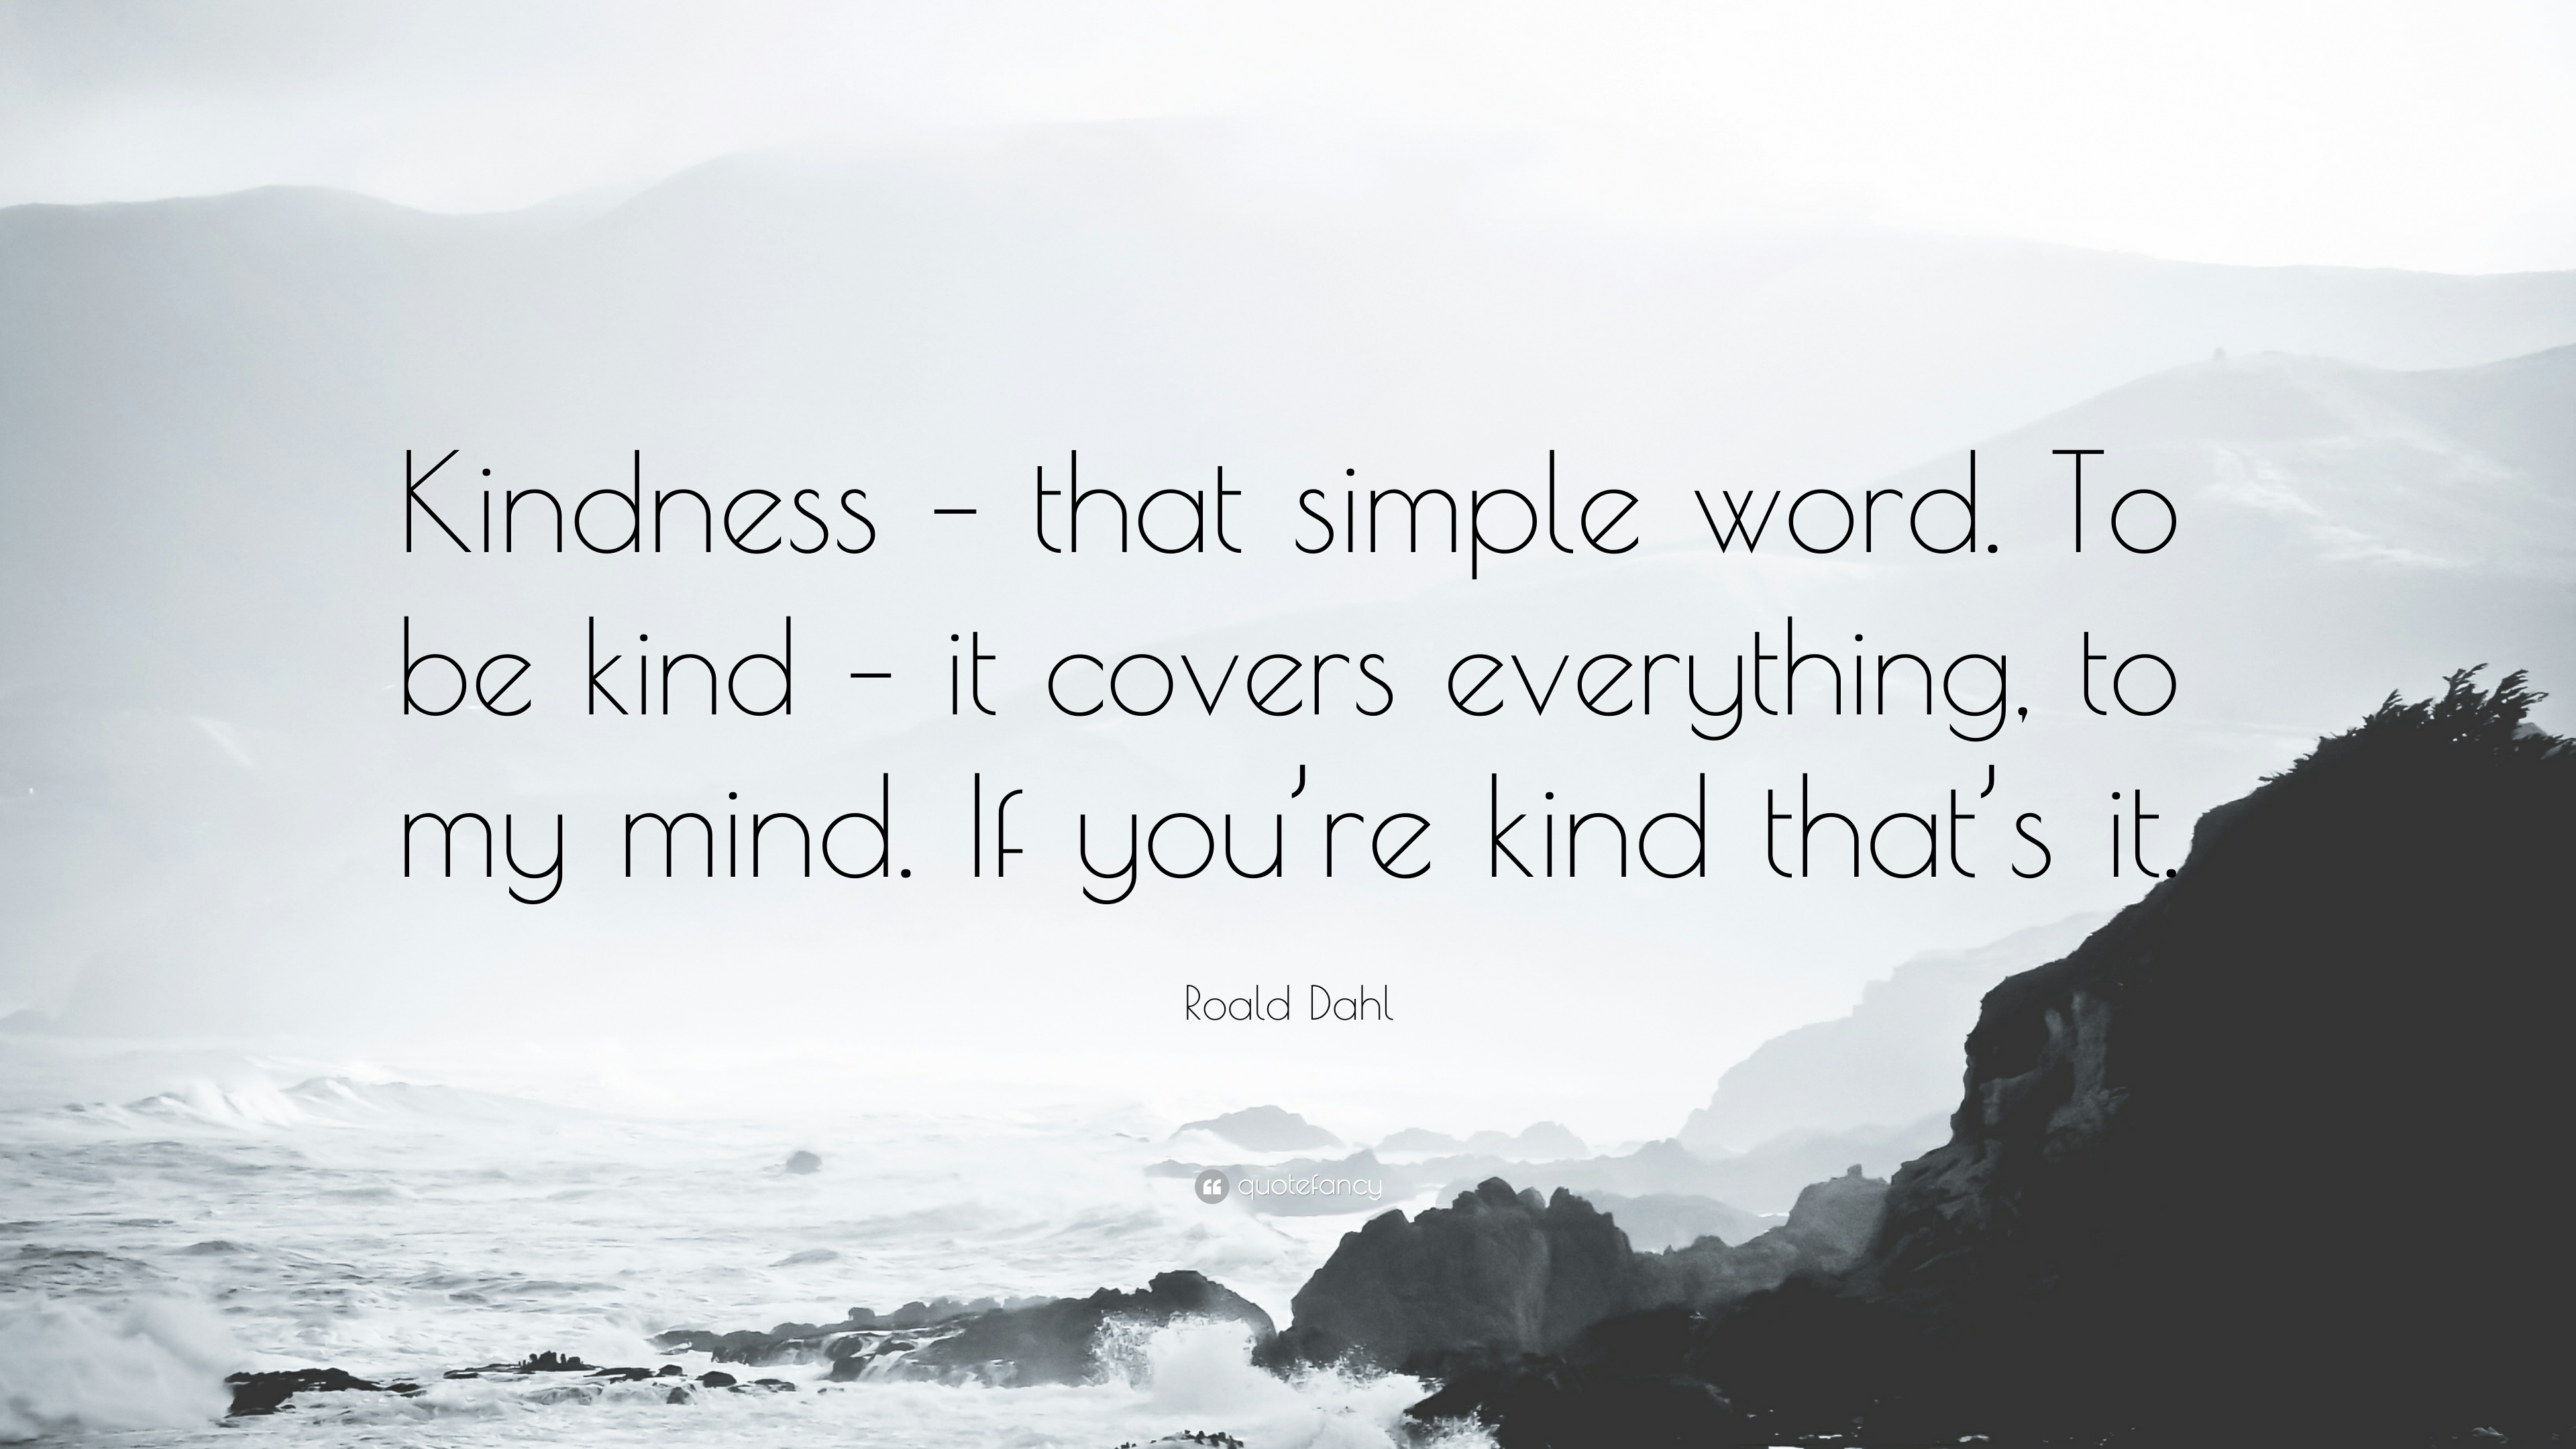 Quotes Kindness Kindness Quotes 40 Wallpapers  Quotefancy